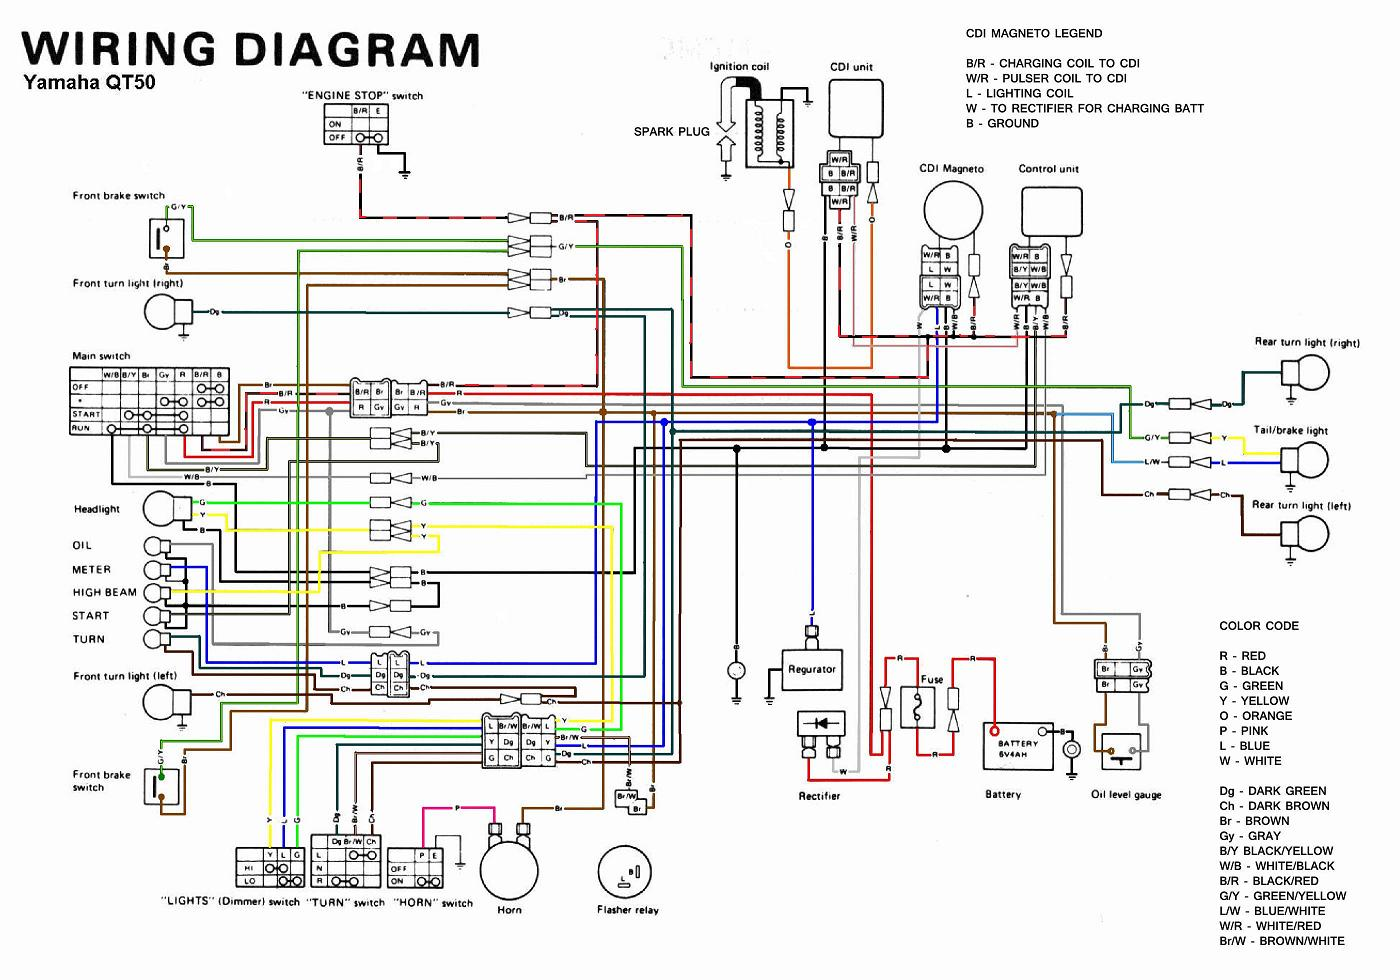 Enjoyable Ktm 500 Exc Wiring Diagram Likewise Switch Wiring Diagram On Xr650R Wiring Digital Resources Millslowmaporg